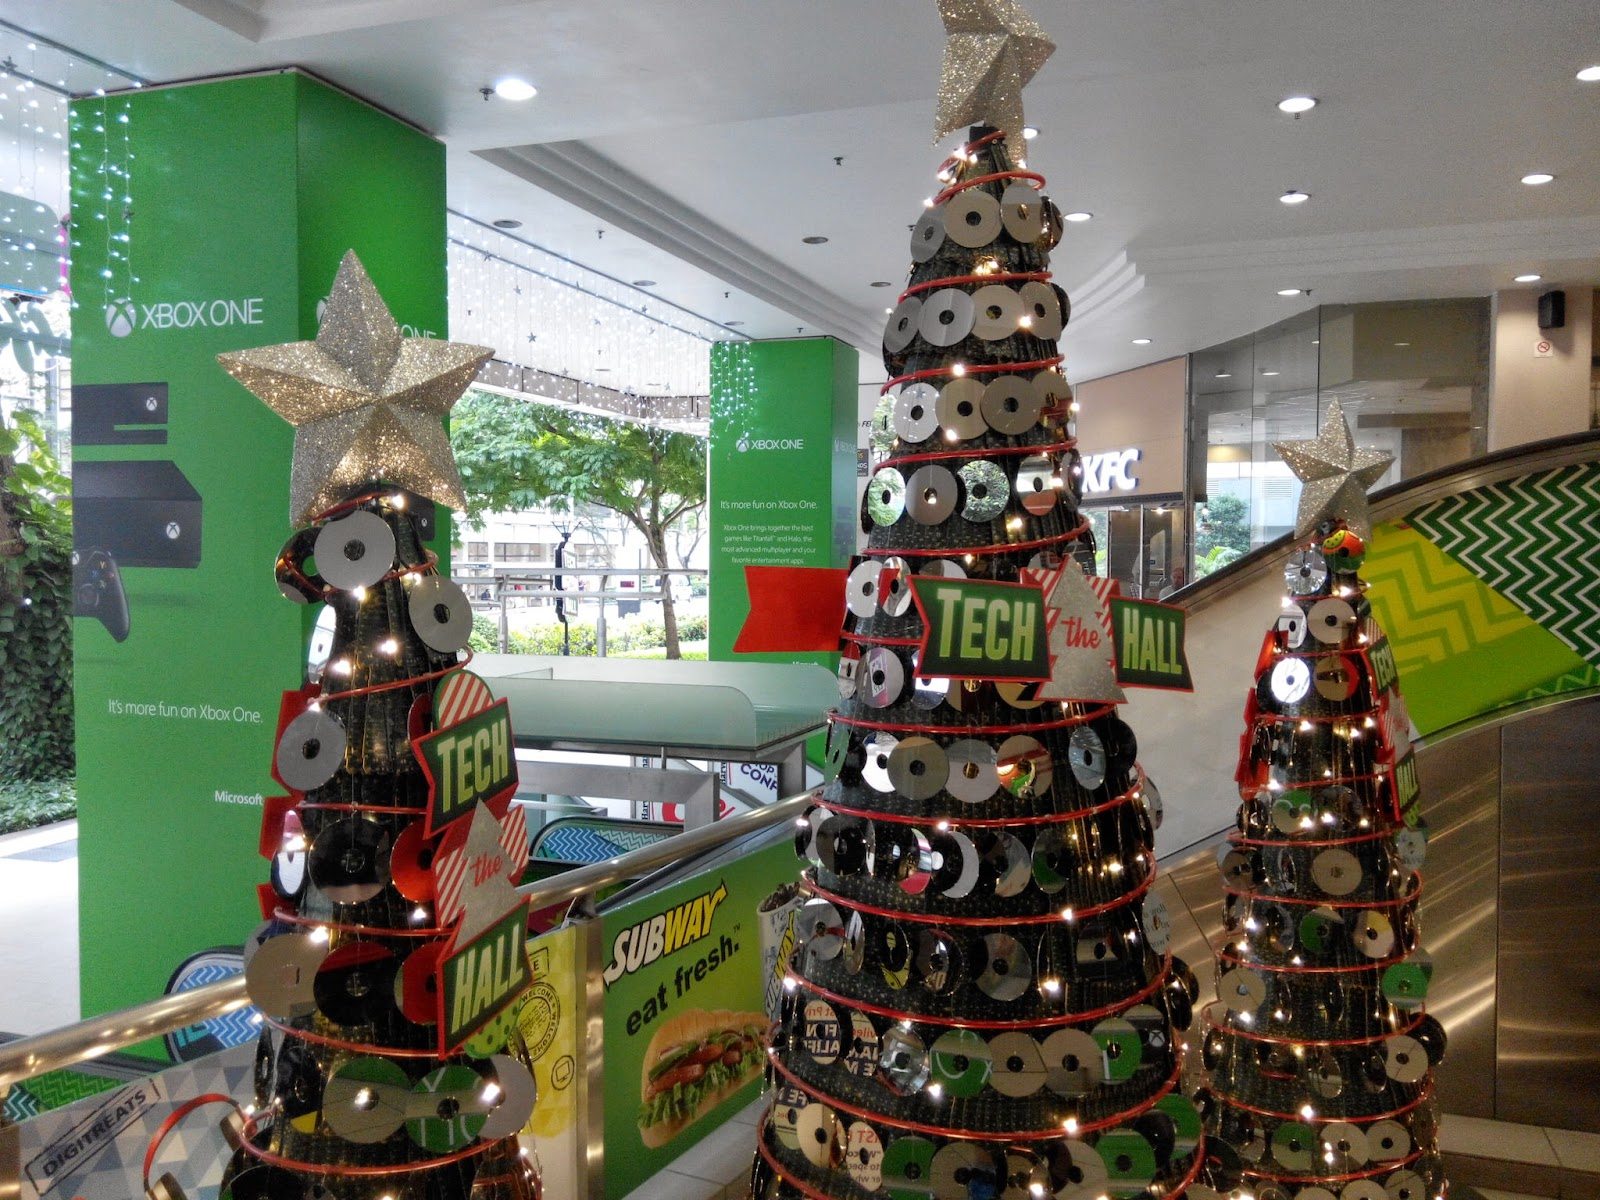 Christmas trees with decorated with DVDs